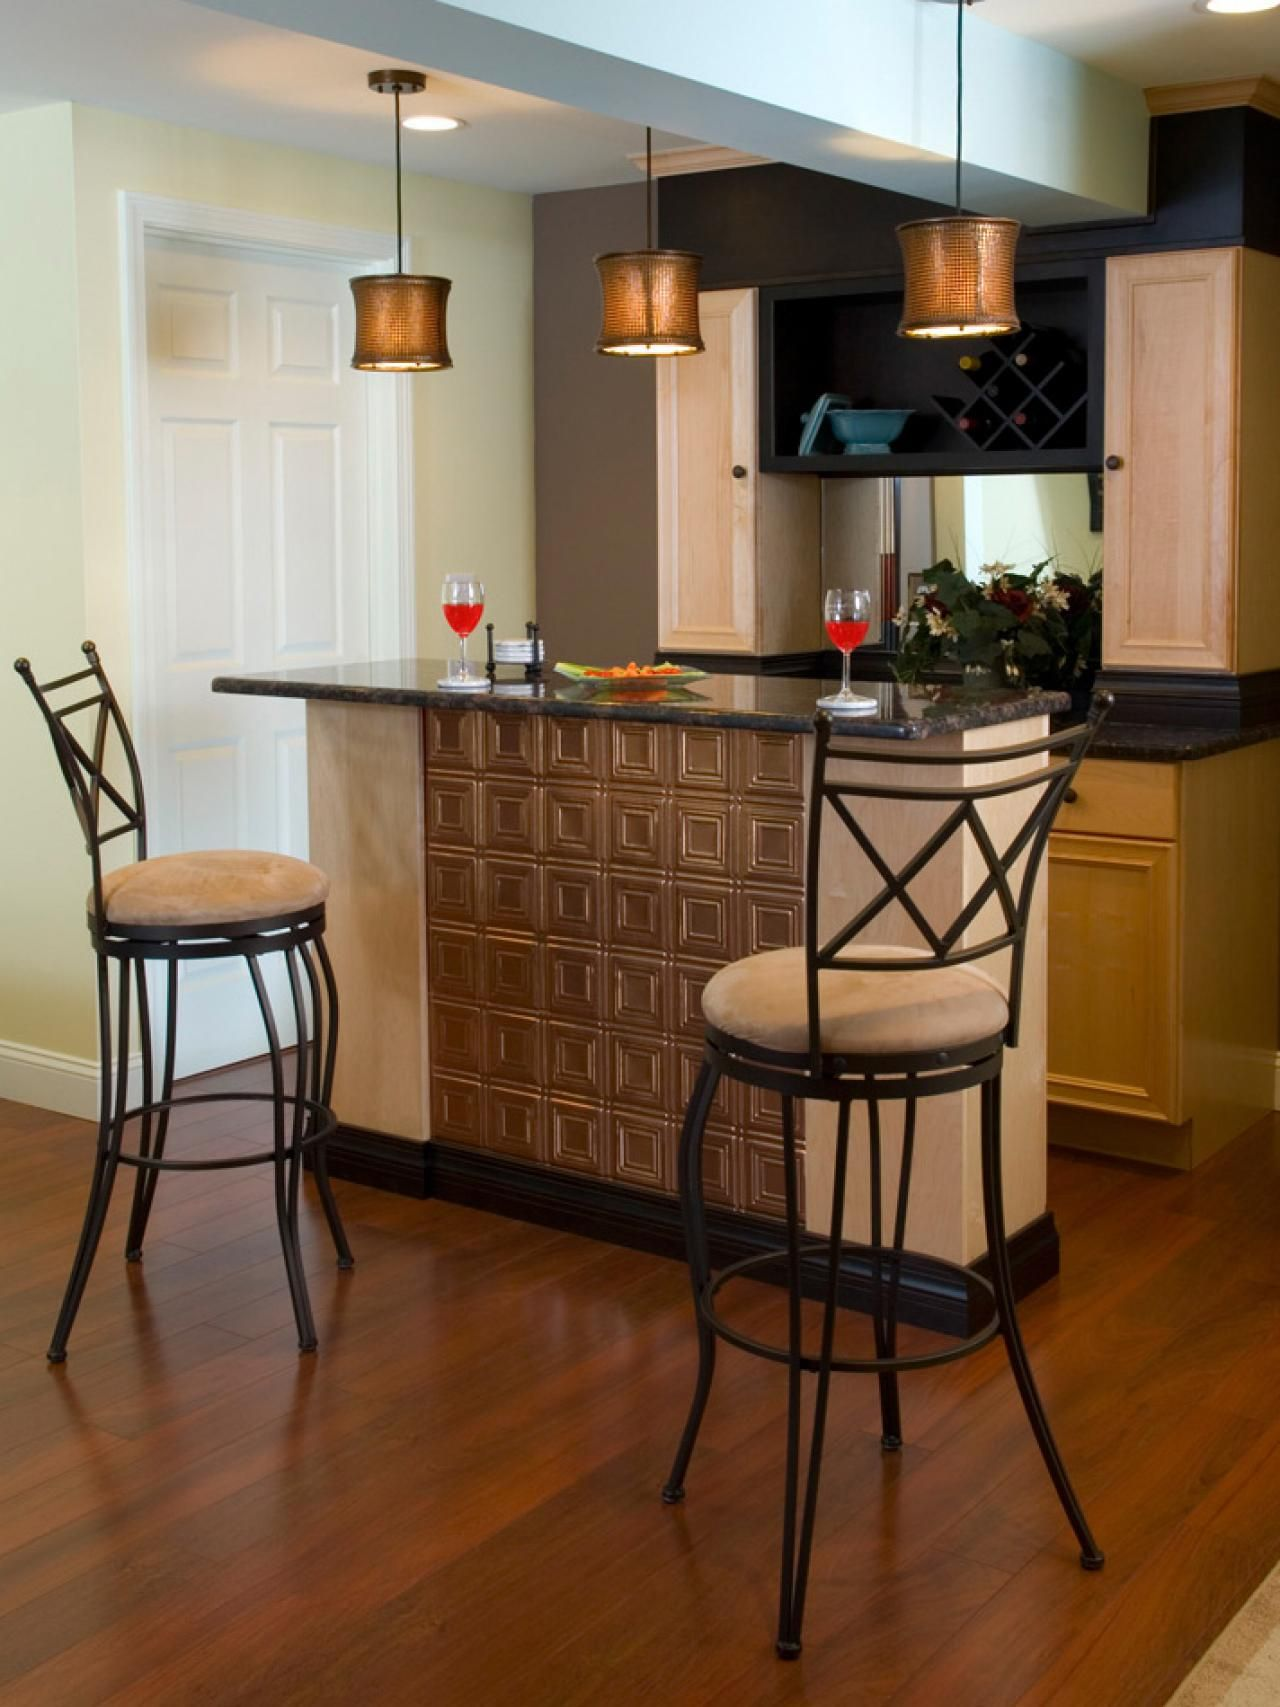 Bar Designs For The Home Remodelling Cool Basement Bar Ideas And Designs Pictures Options & Tips . Decorating Design